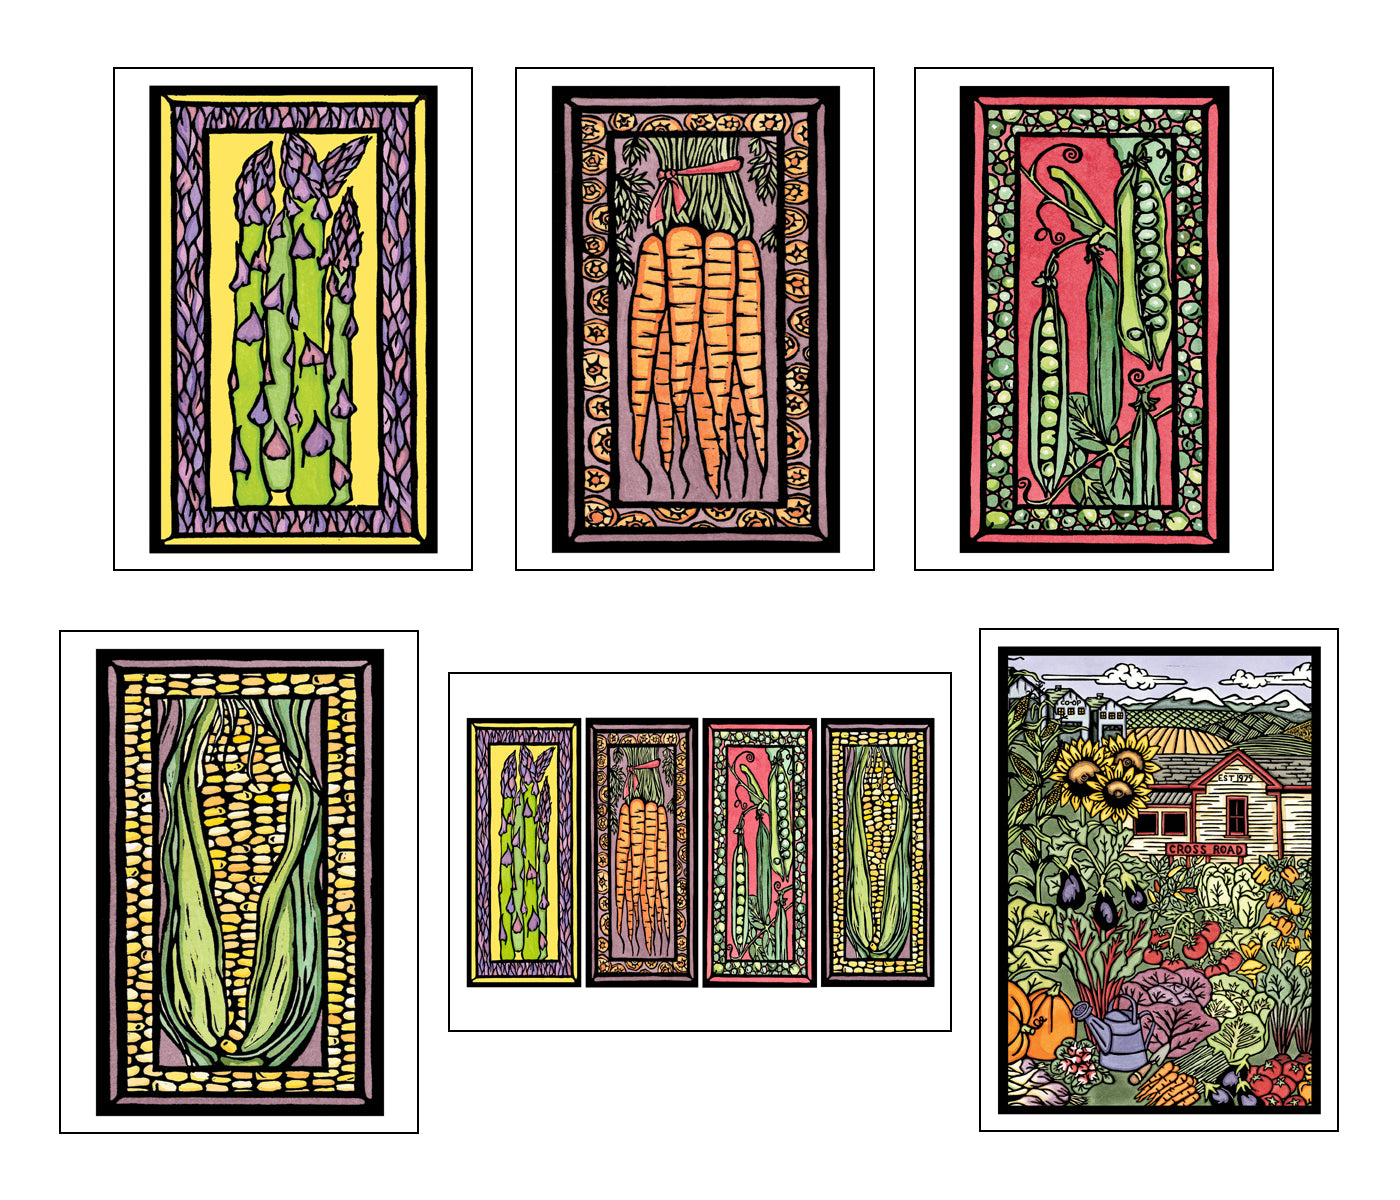 Garden Collection - 6 Pack - Sarah Angst Art Greeting Cards, Giclee Prints, Jewelry, More